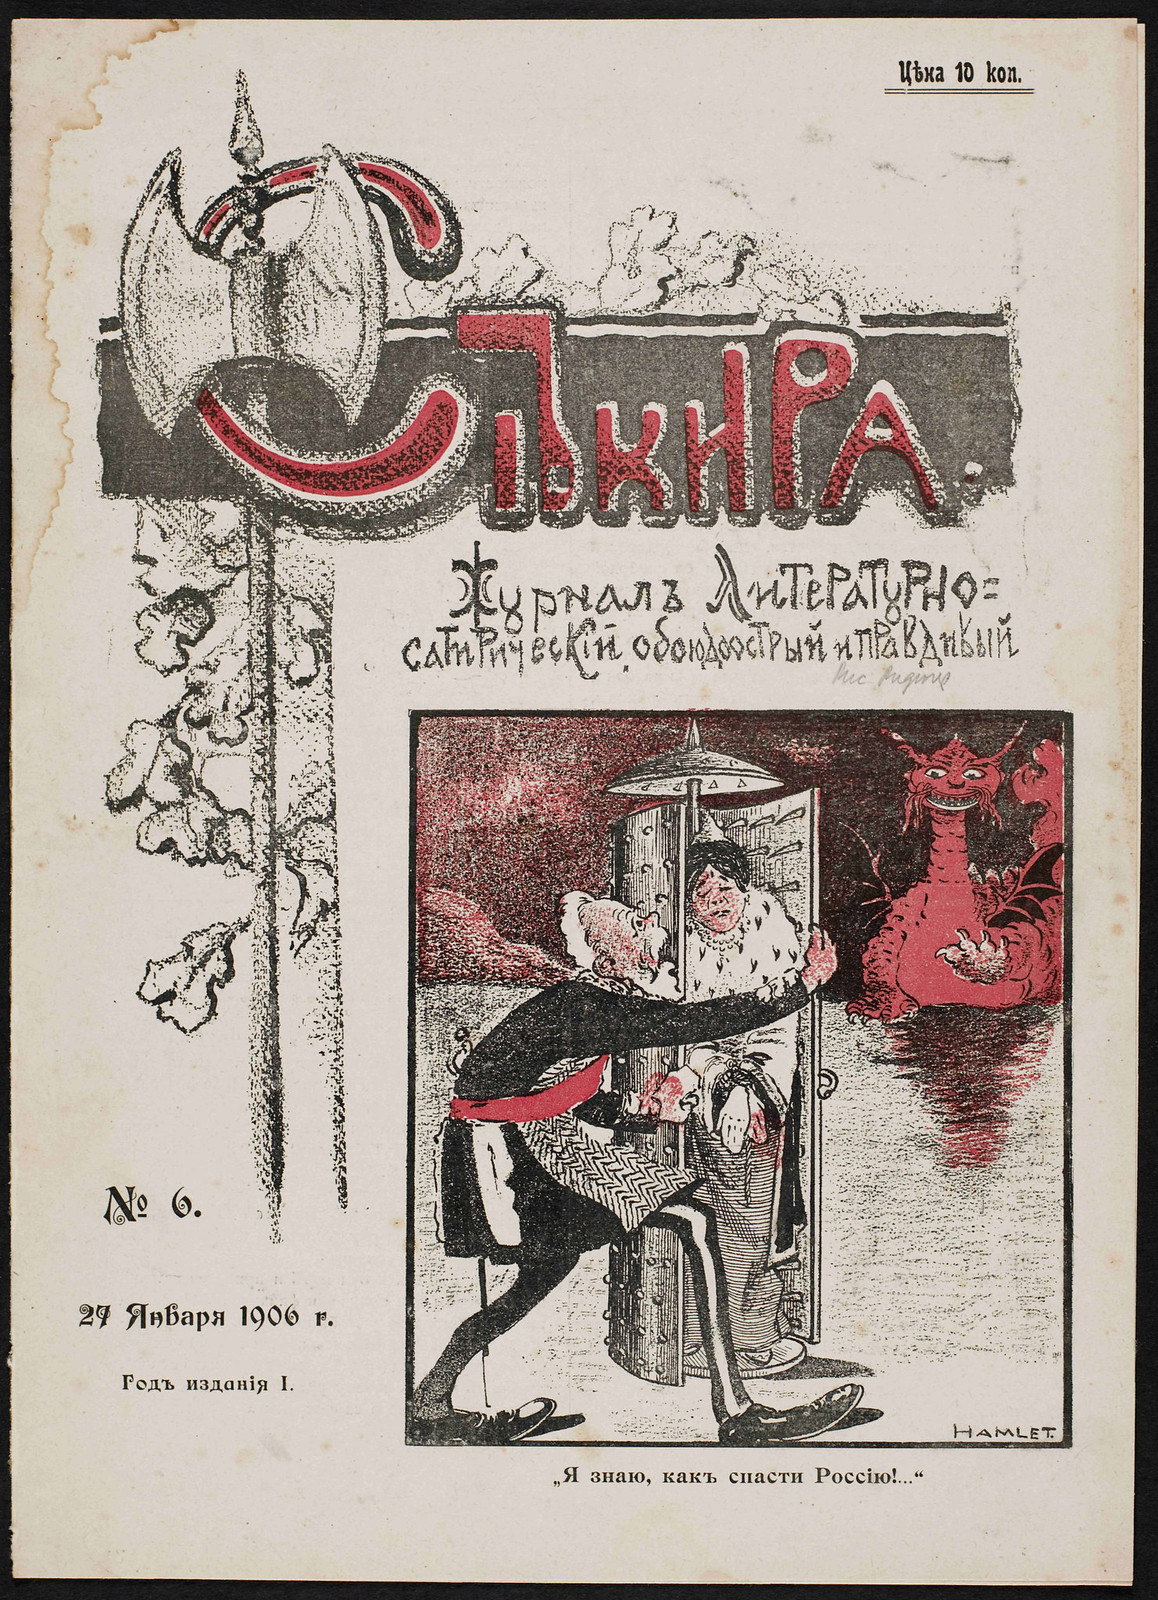 Sekira, vol. 1, no. 6, January 27, 1906